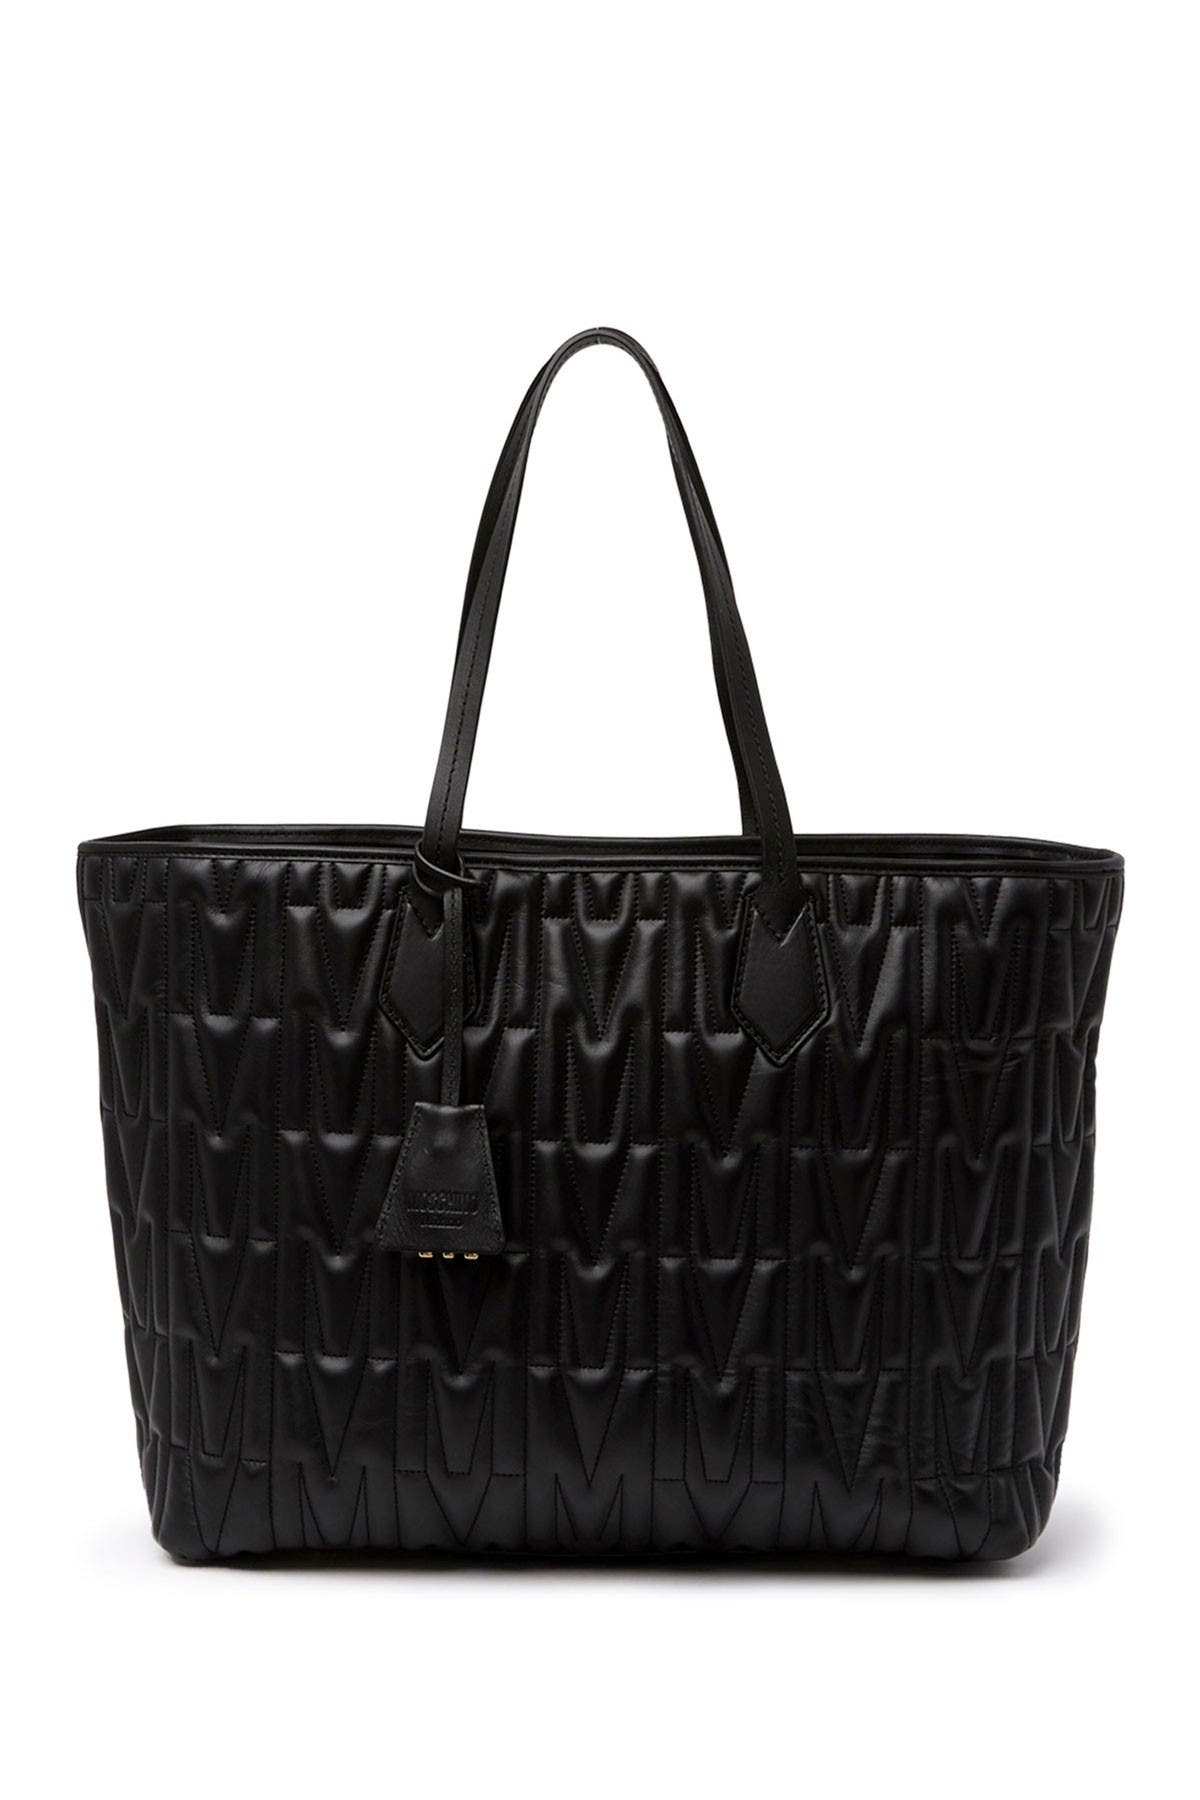 Image of MOSCHINO Quilted Embossed Tote